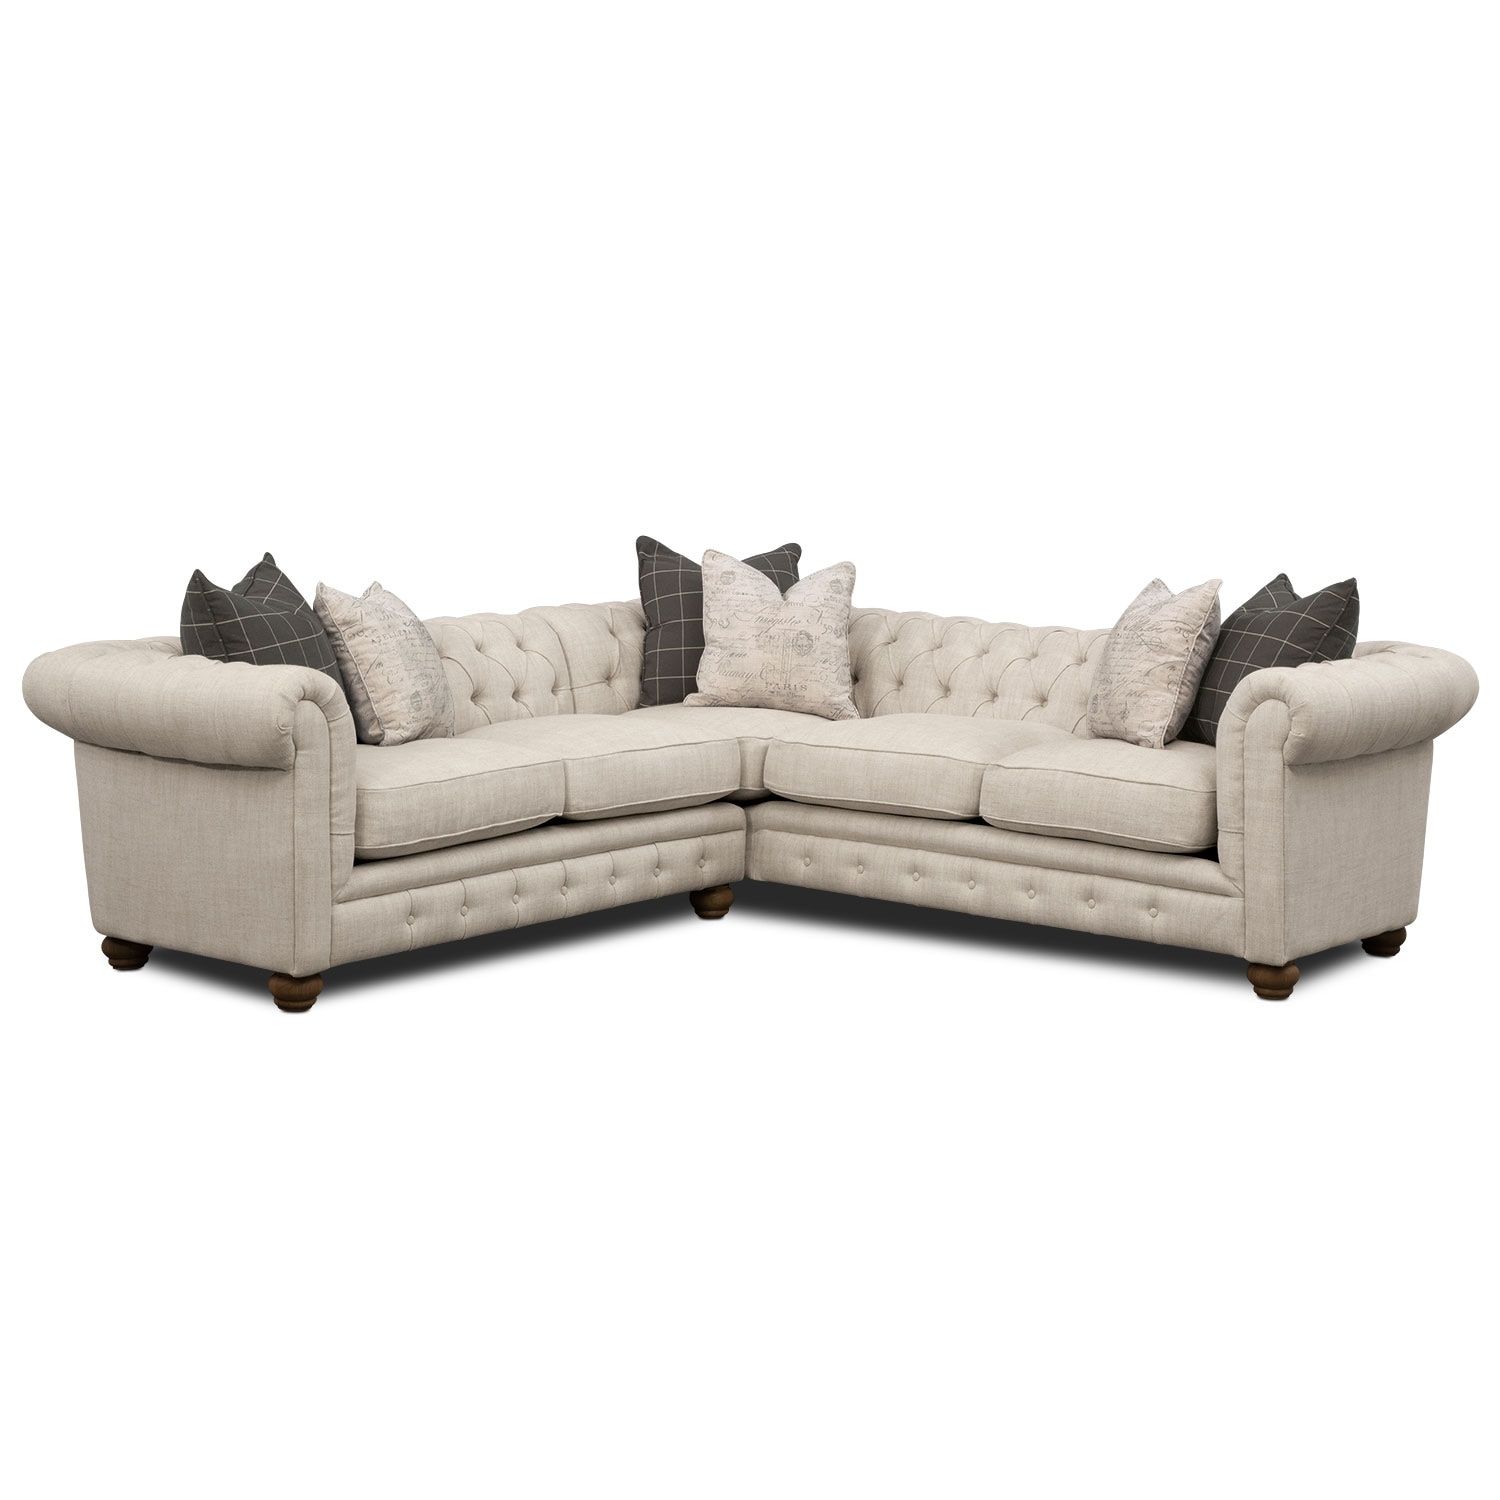 Madeline 2-Piece Sectional - Beige